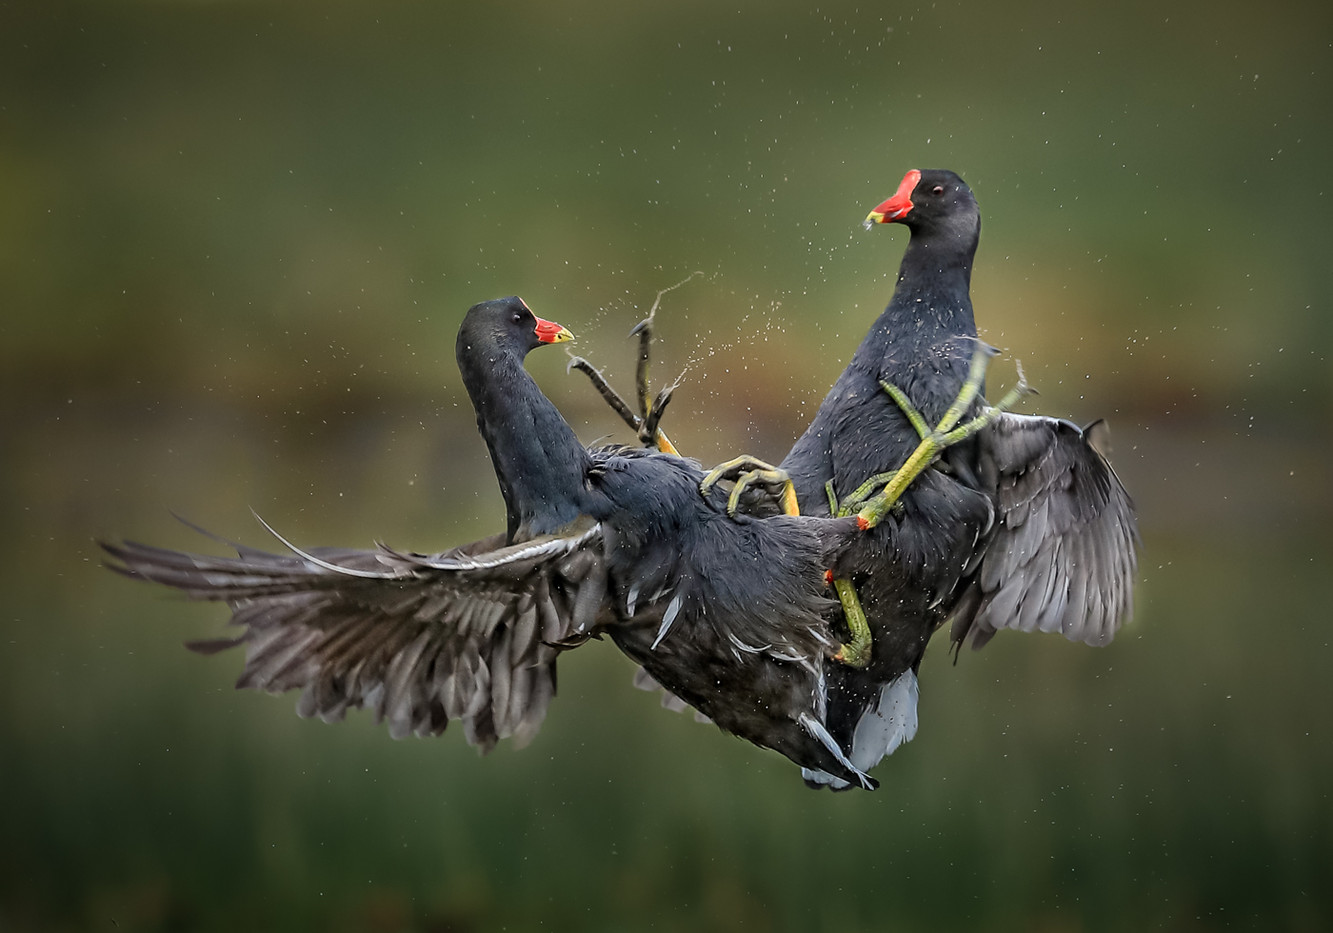 20 (Second) MOORHENS IN AERIAL COMBAT by David Godfrey